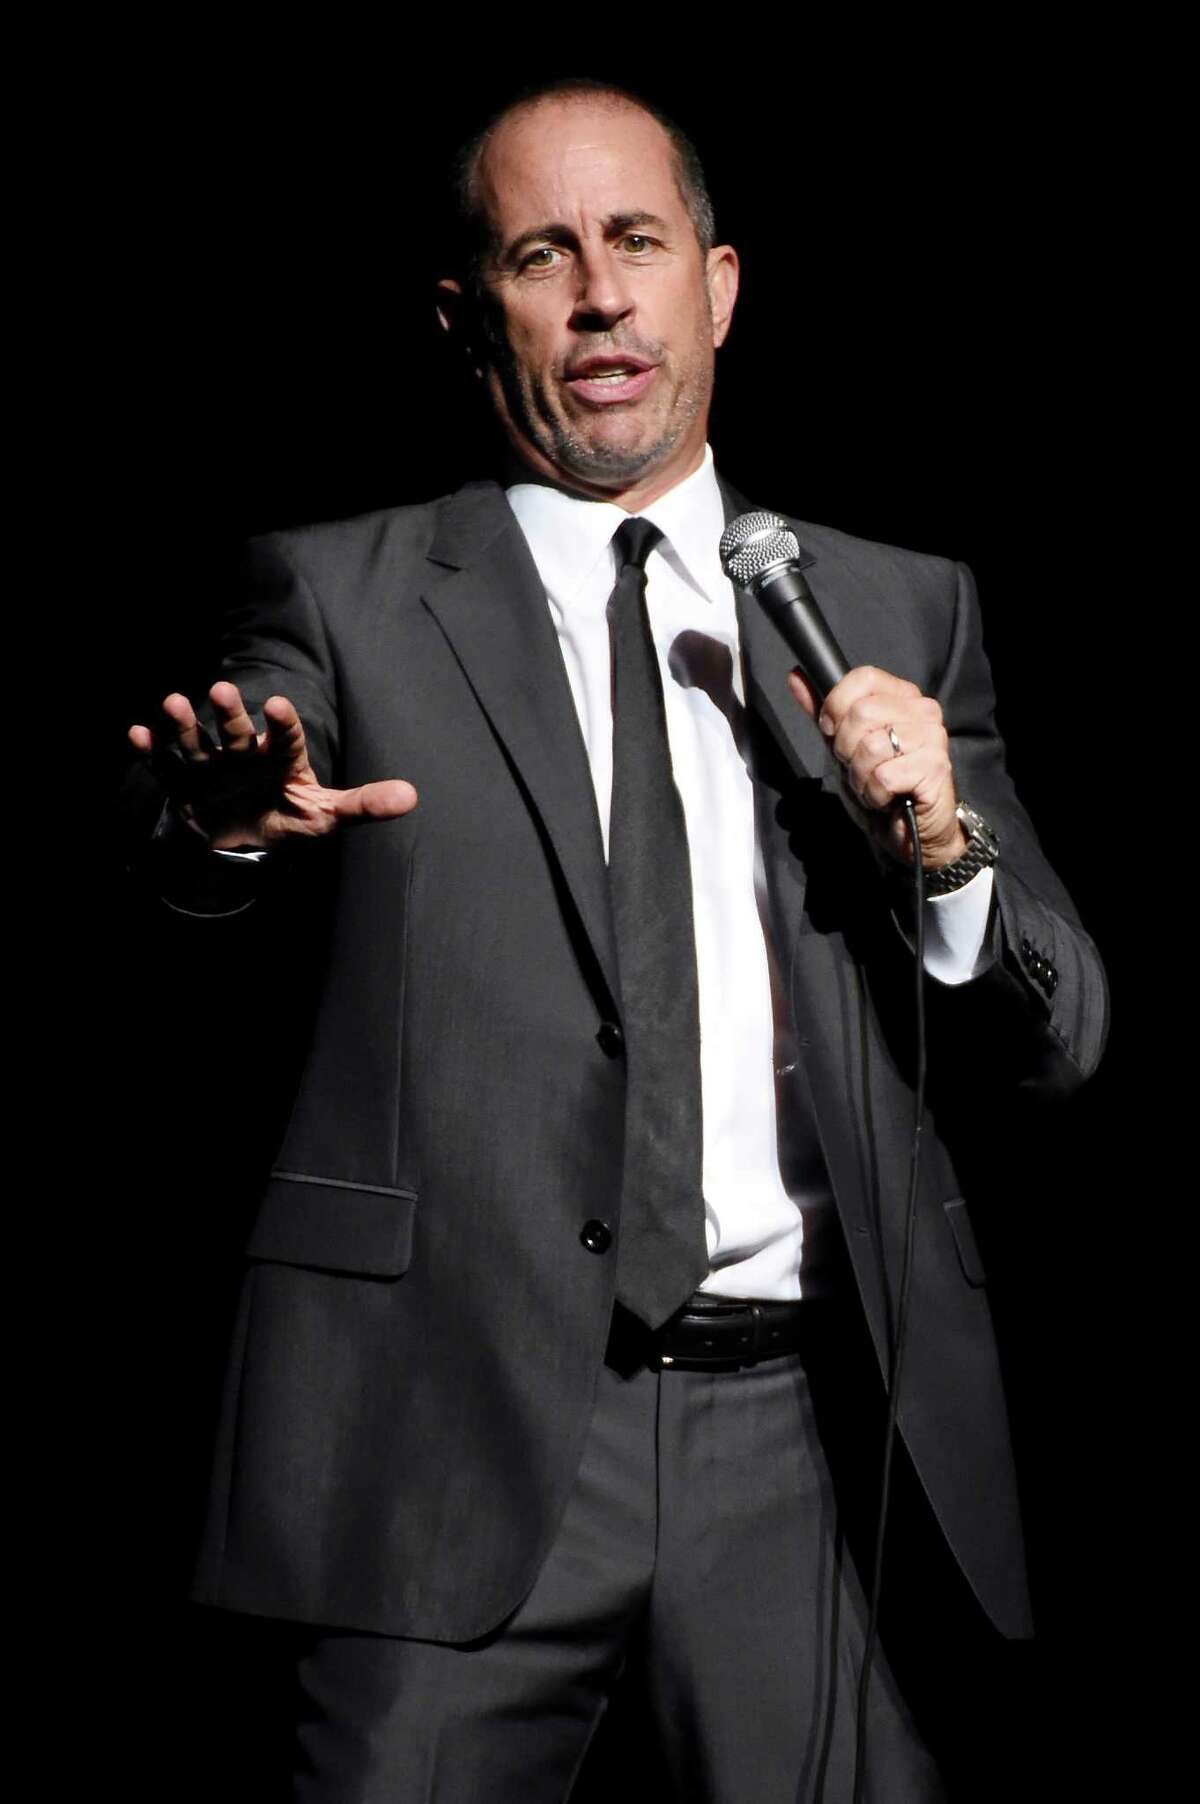 NEW YORK, NY - NOVEMBER 16: Comedian Jerry Seinfeld performs onstage as Baby Buggy celebrates 15 years with